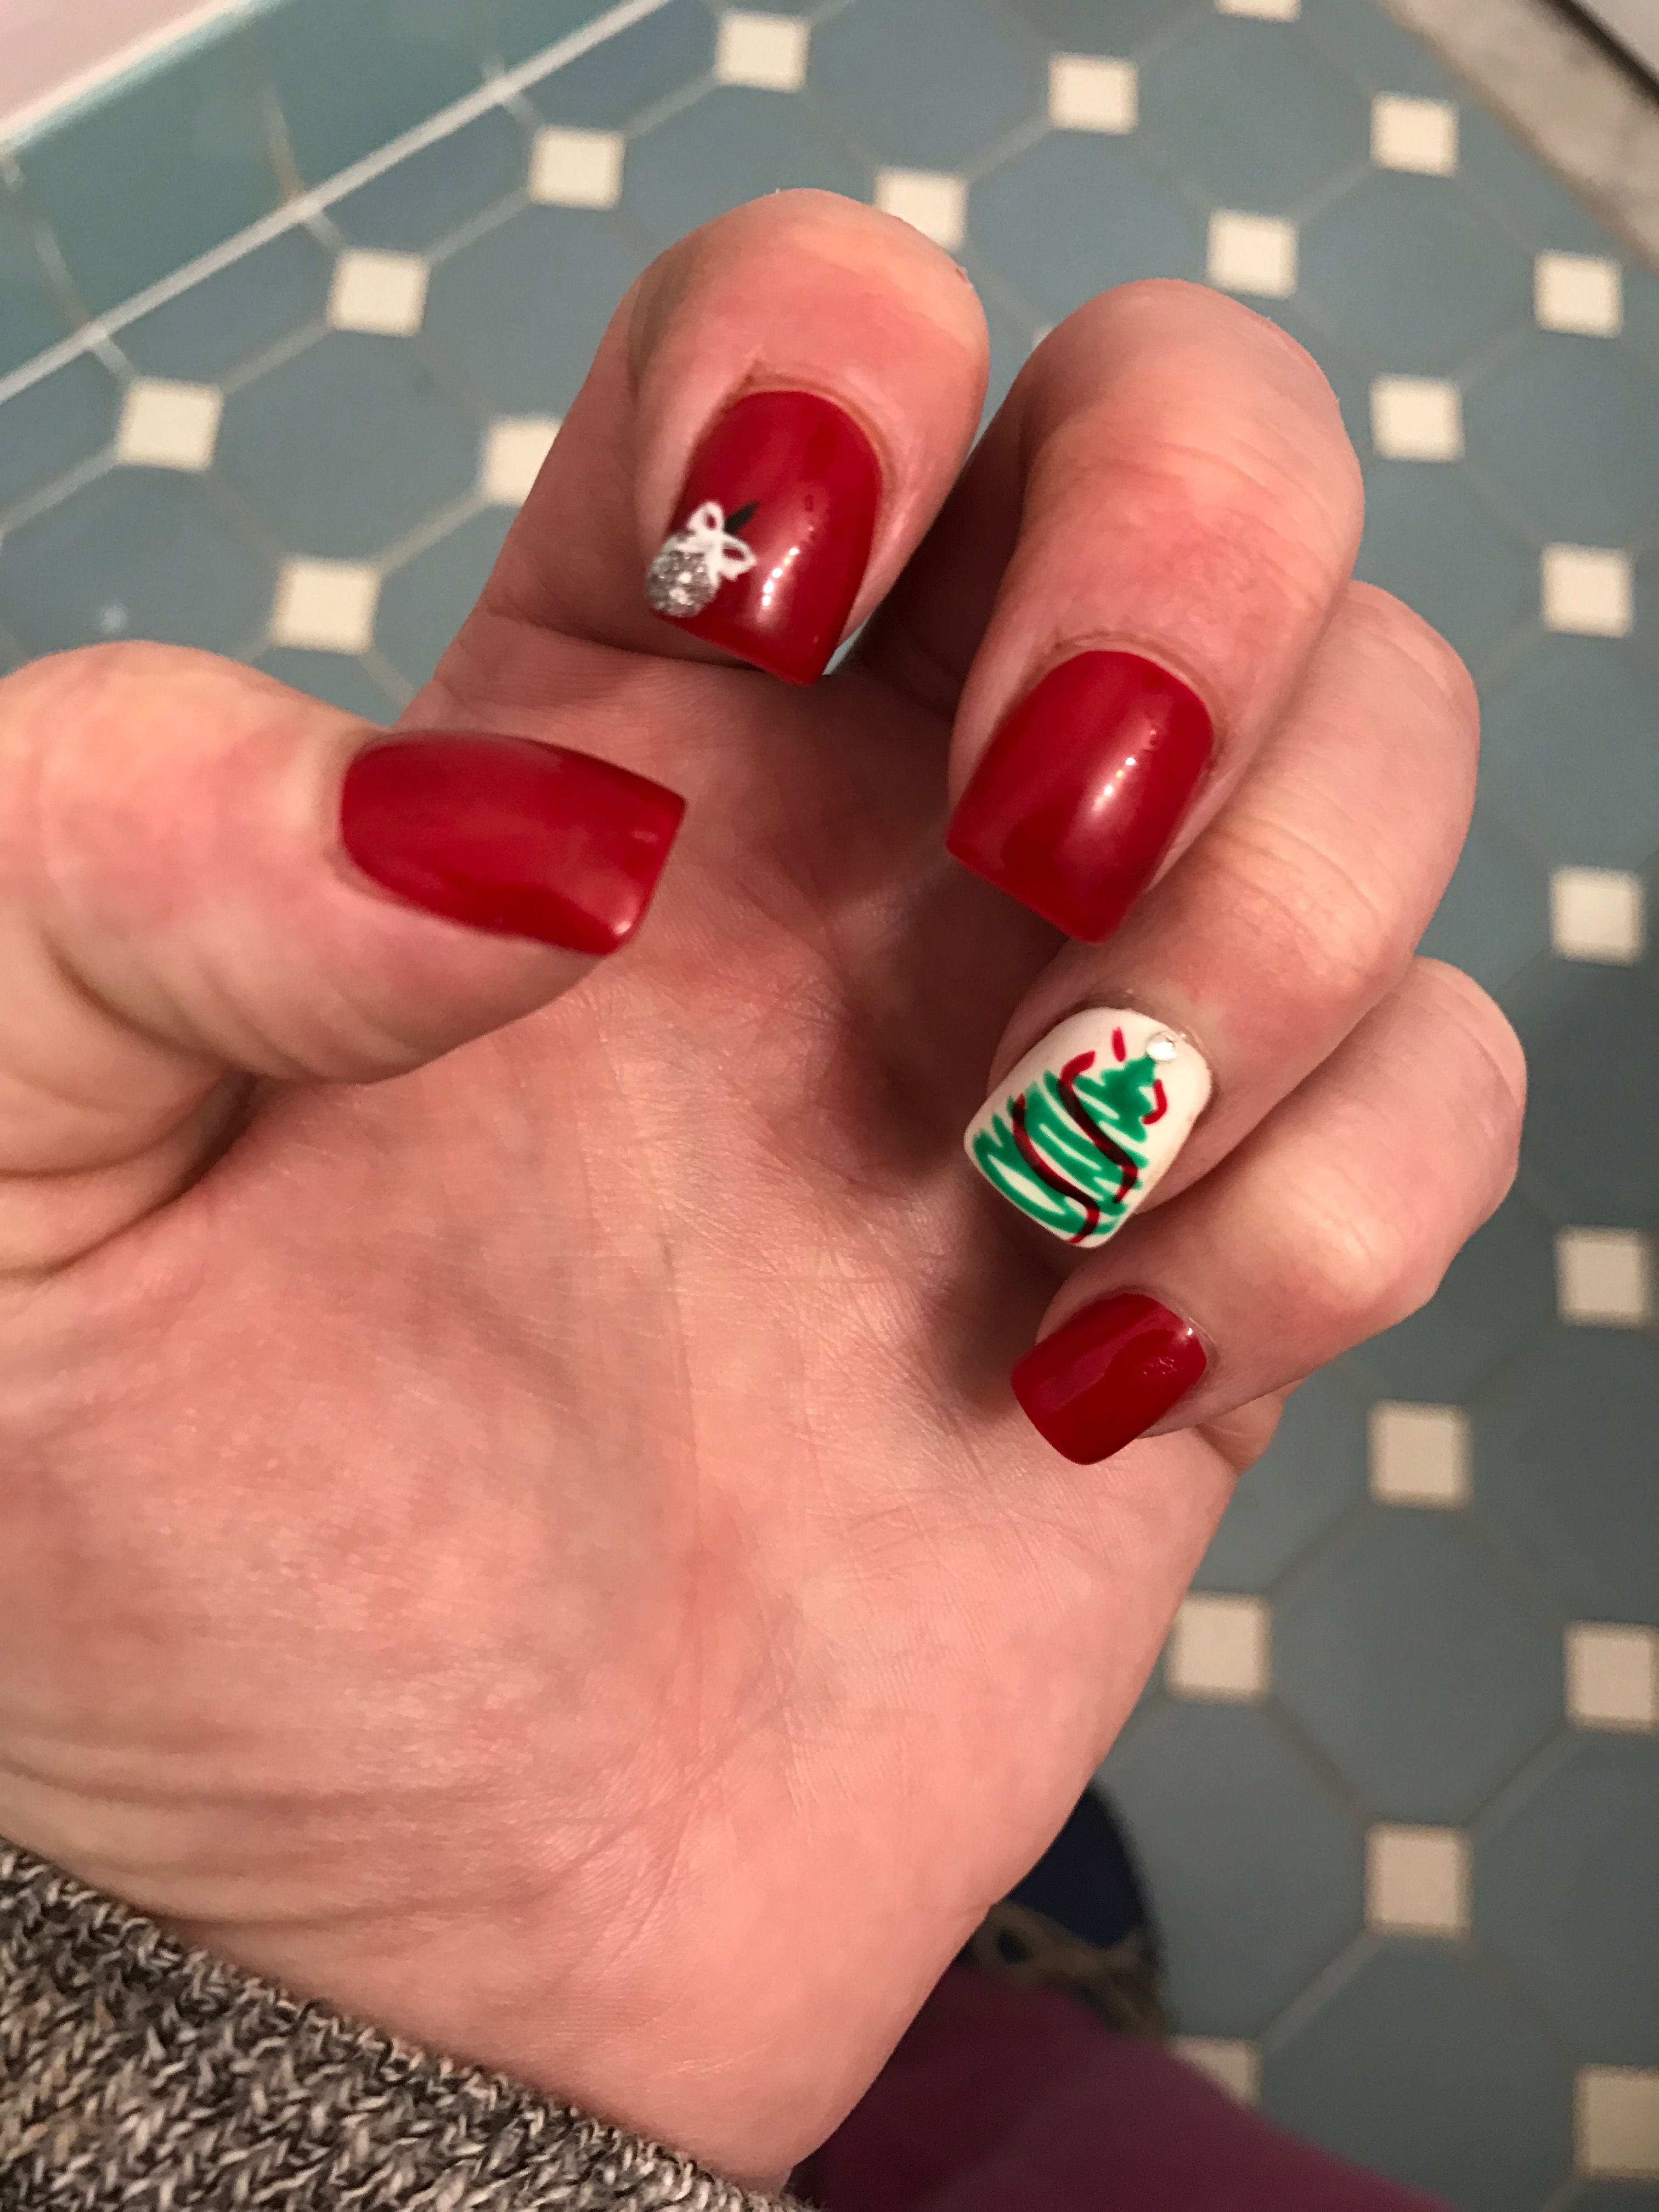 My Christmas Nails 2016 Red Gel Manicure Accent Nail White With Green Tree And Ribbon Thru It Silver Ornament On Pointer Finger